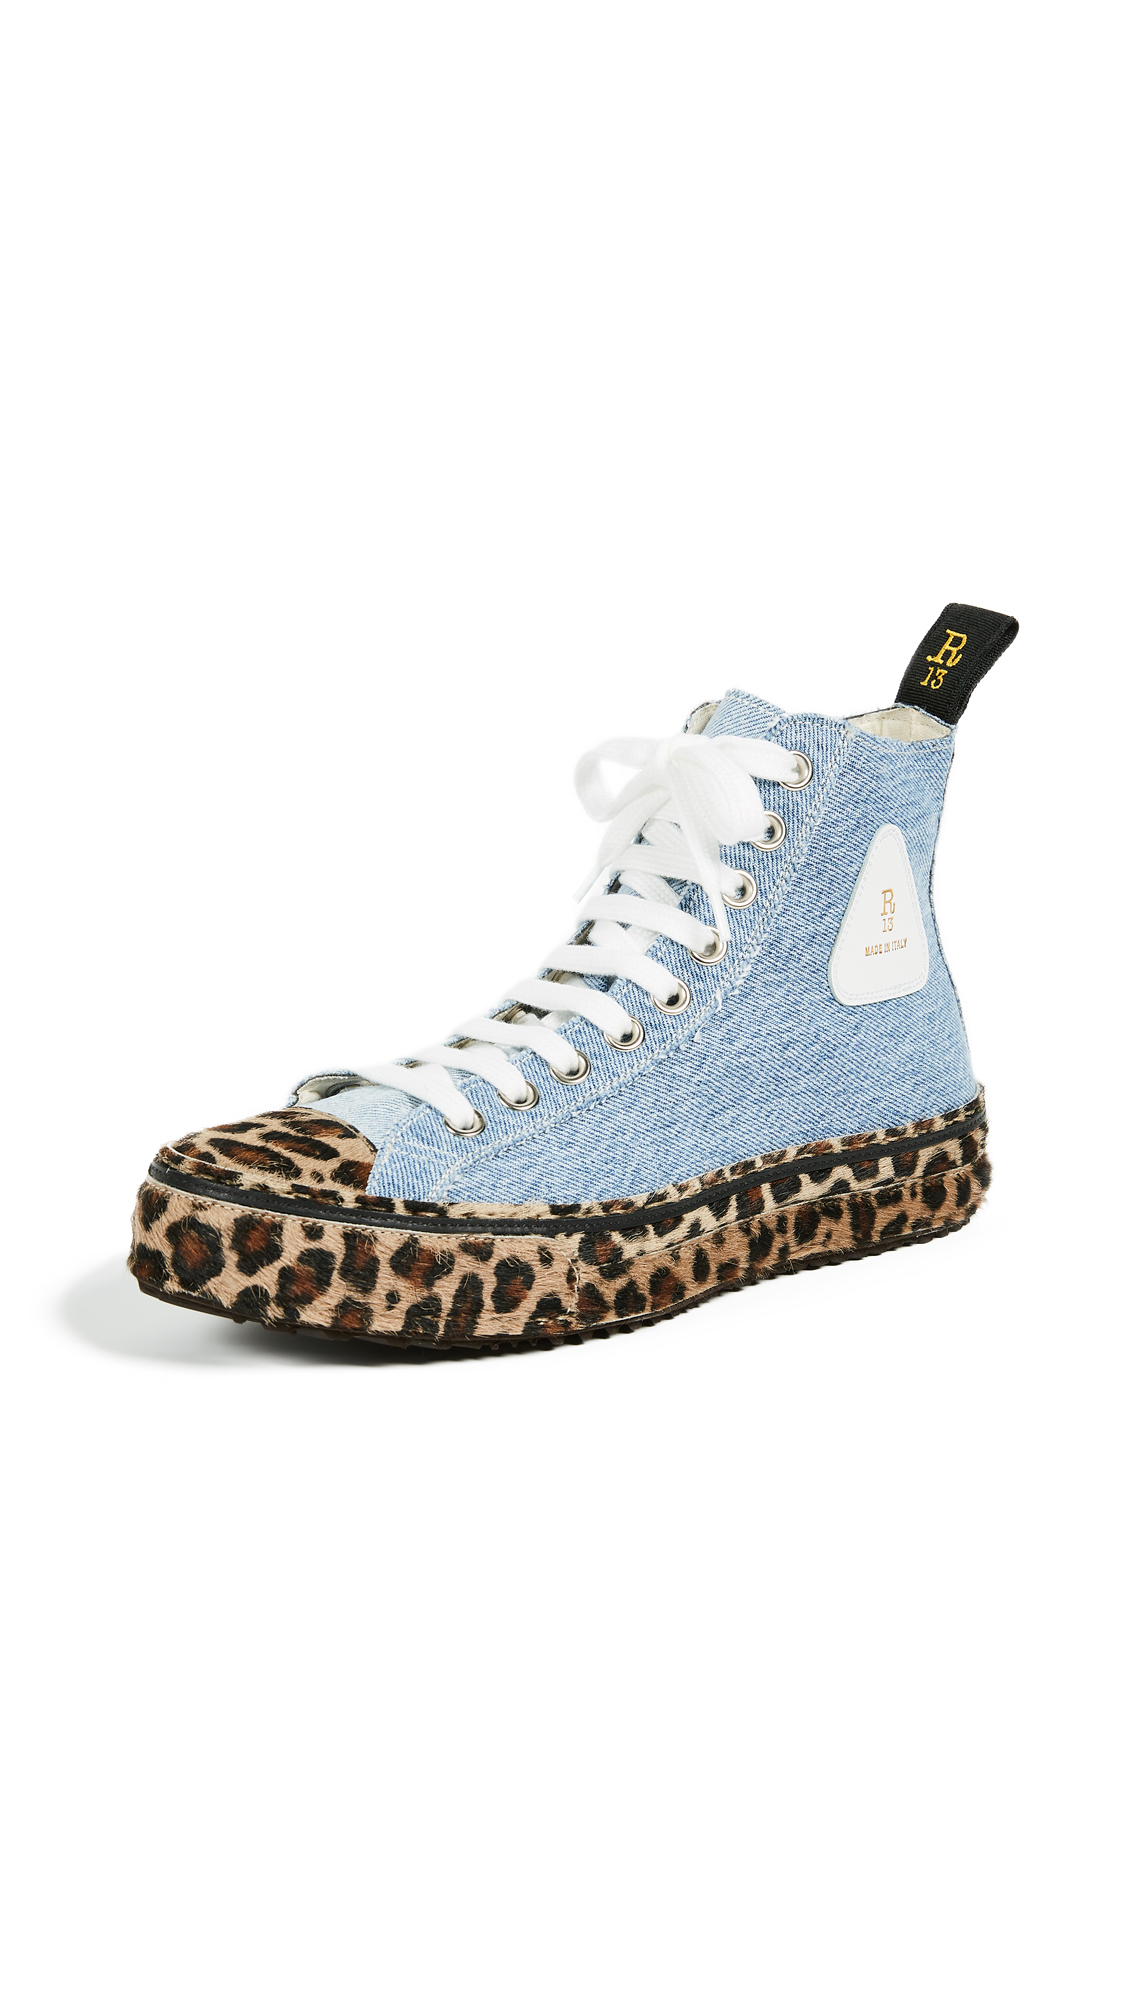 R13 Re Purposed Denim High Top Sneakers - Denim/Leopard